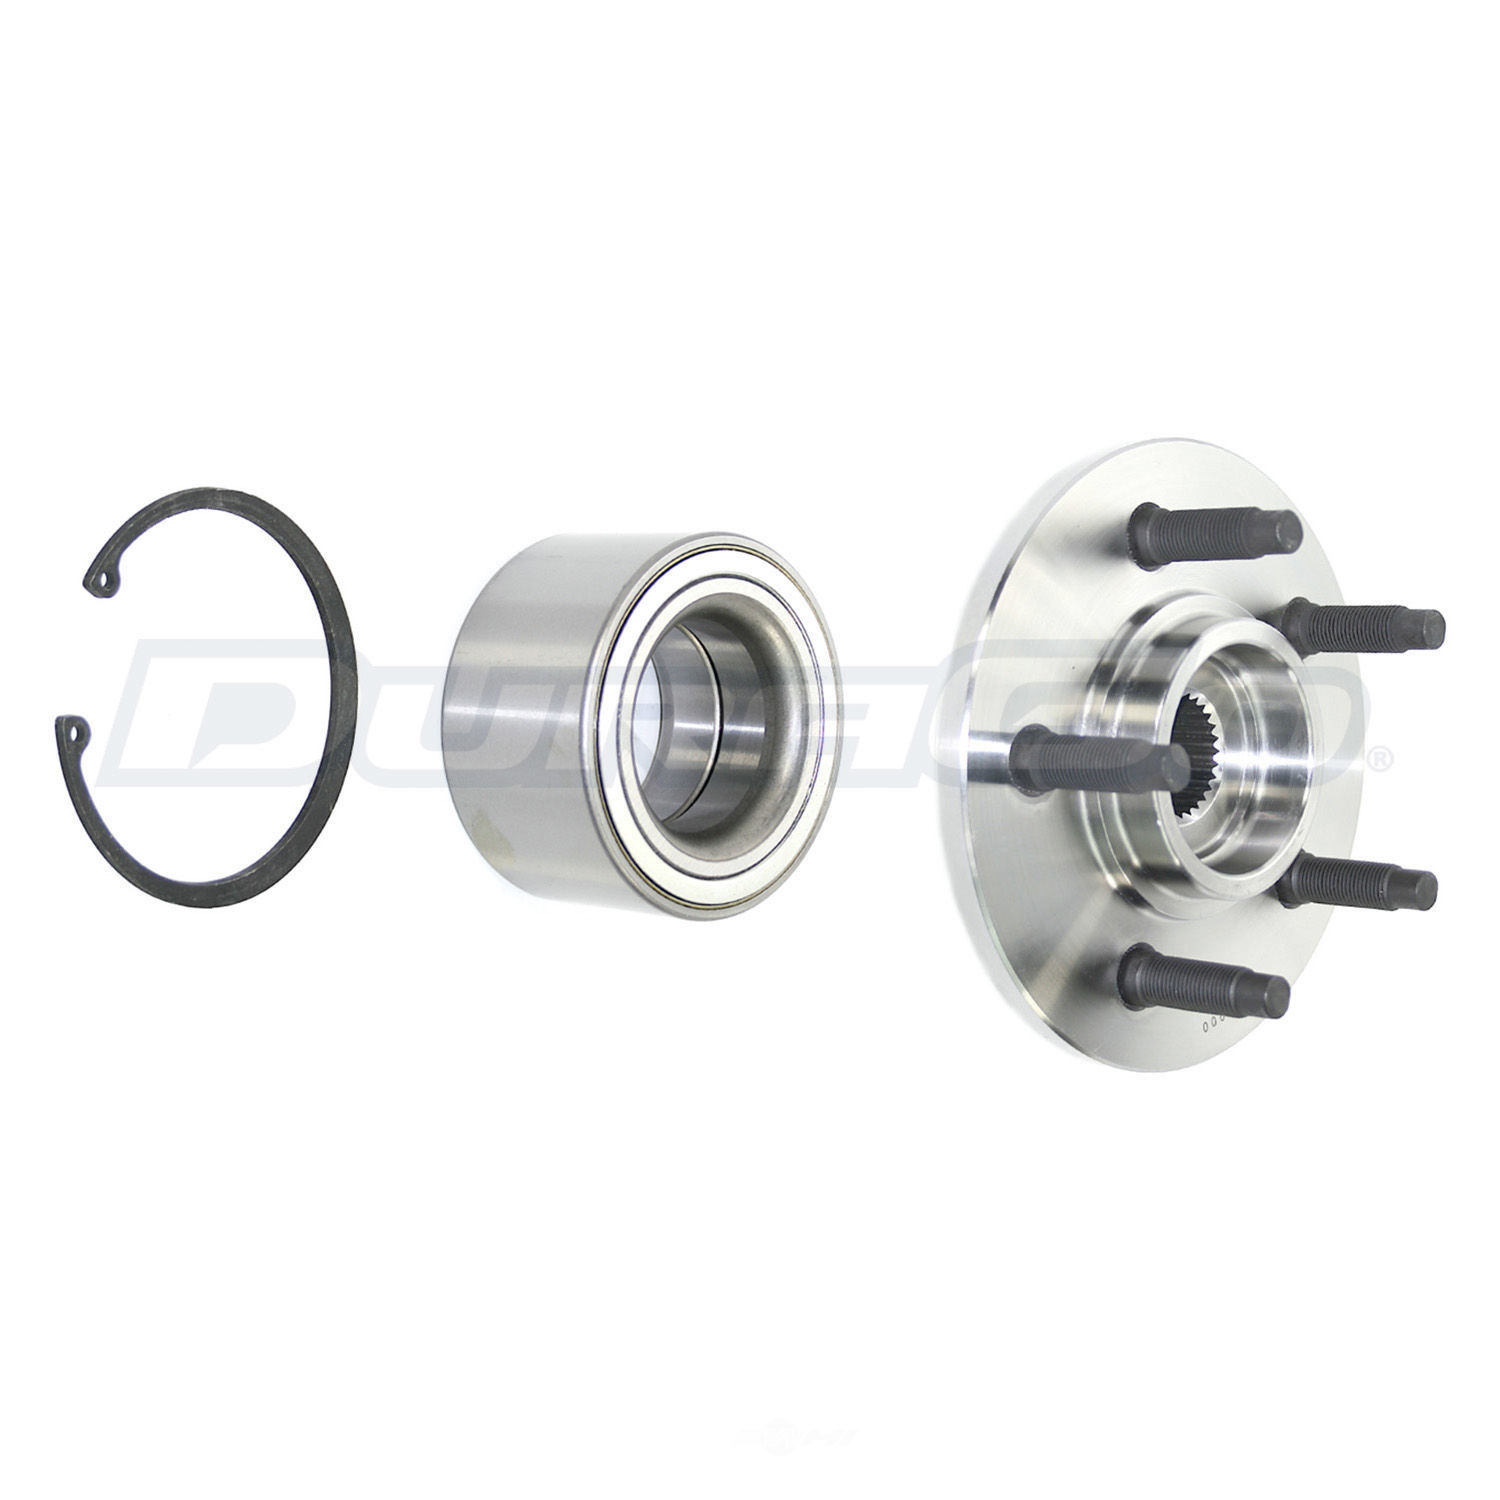 DURA INTERNATIONAL - Wheel Hub Repair Kit - D48 295-21000